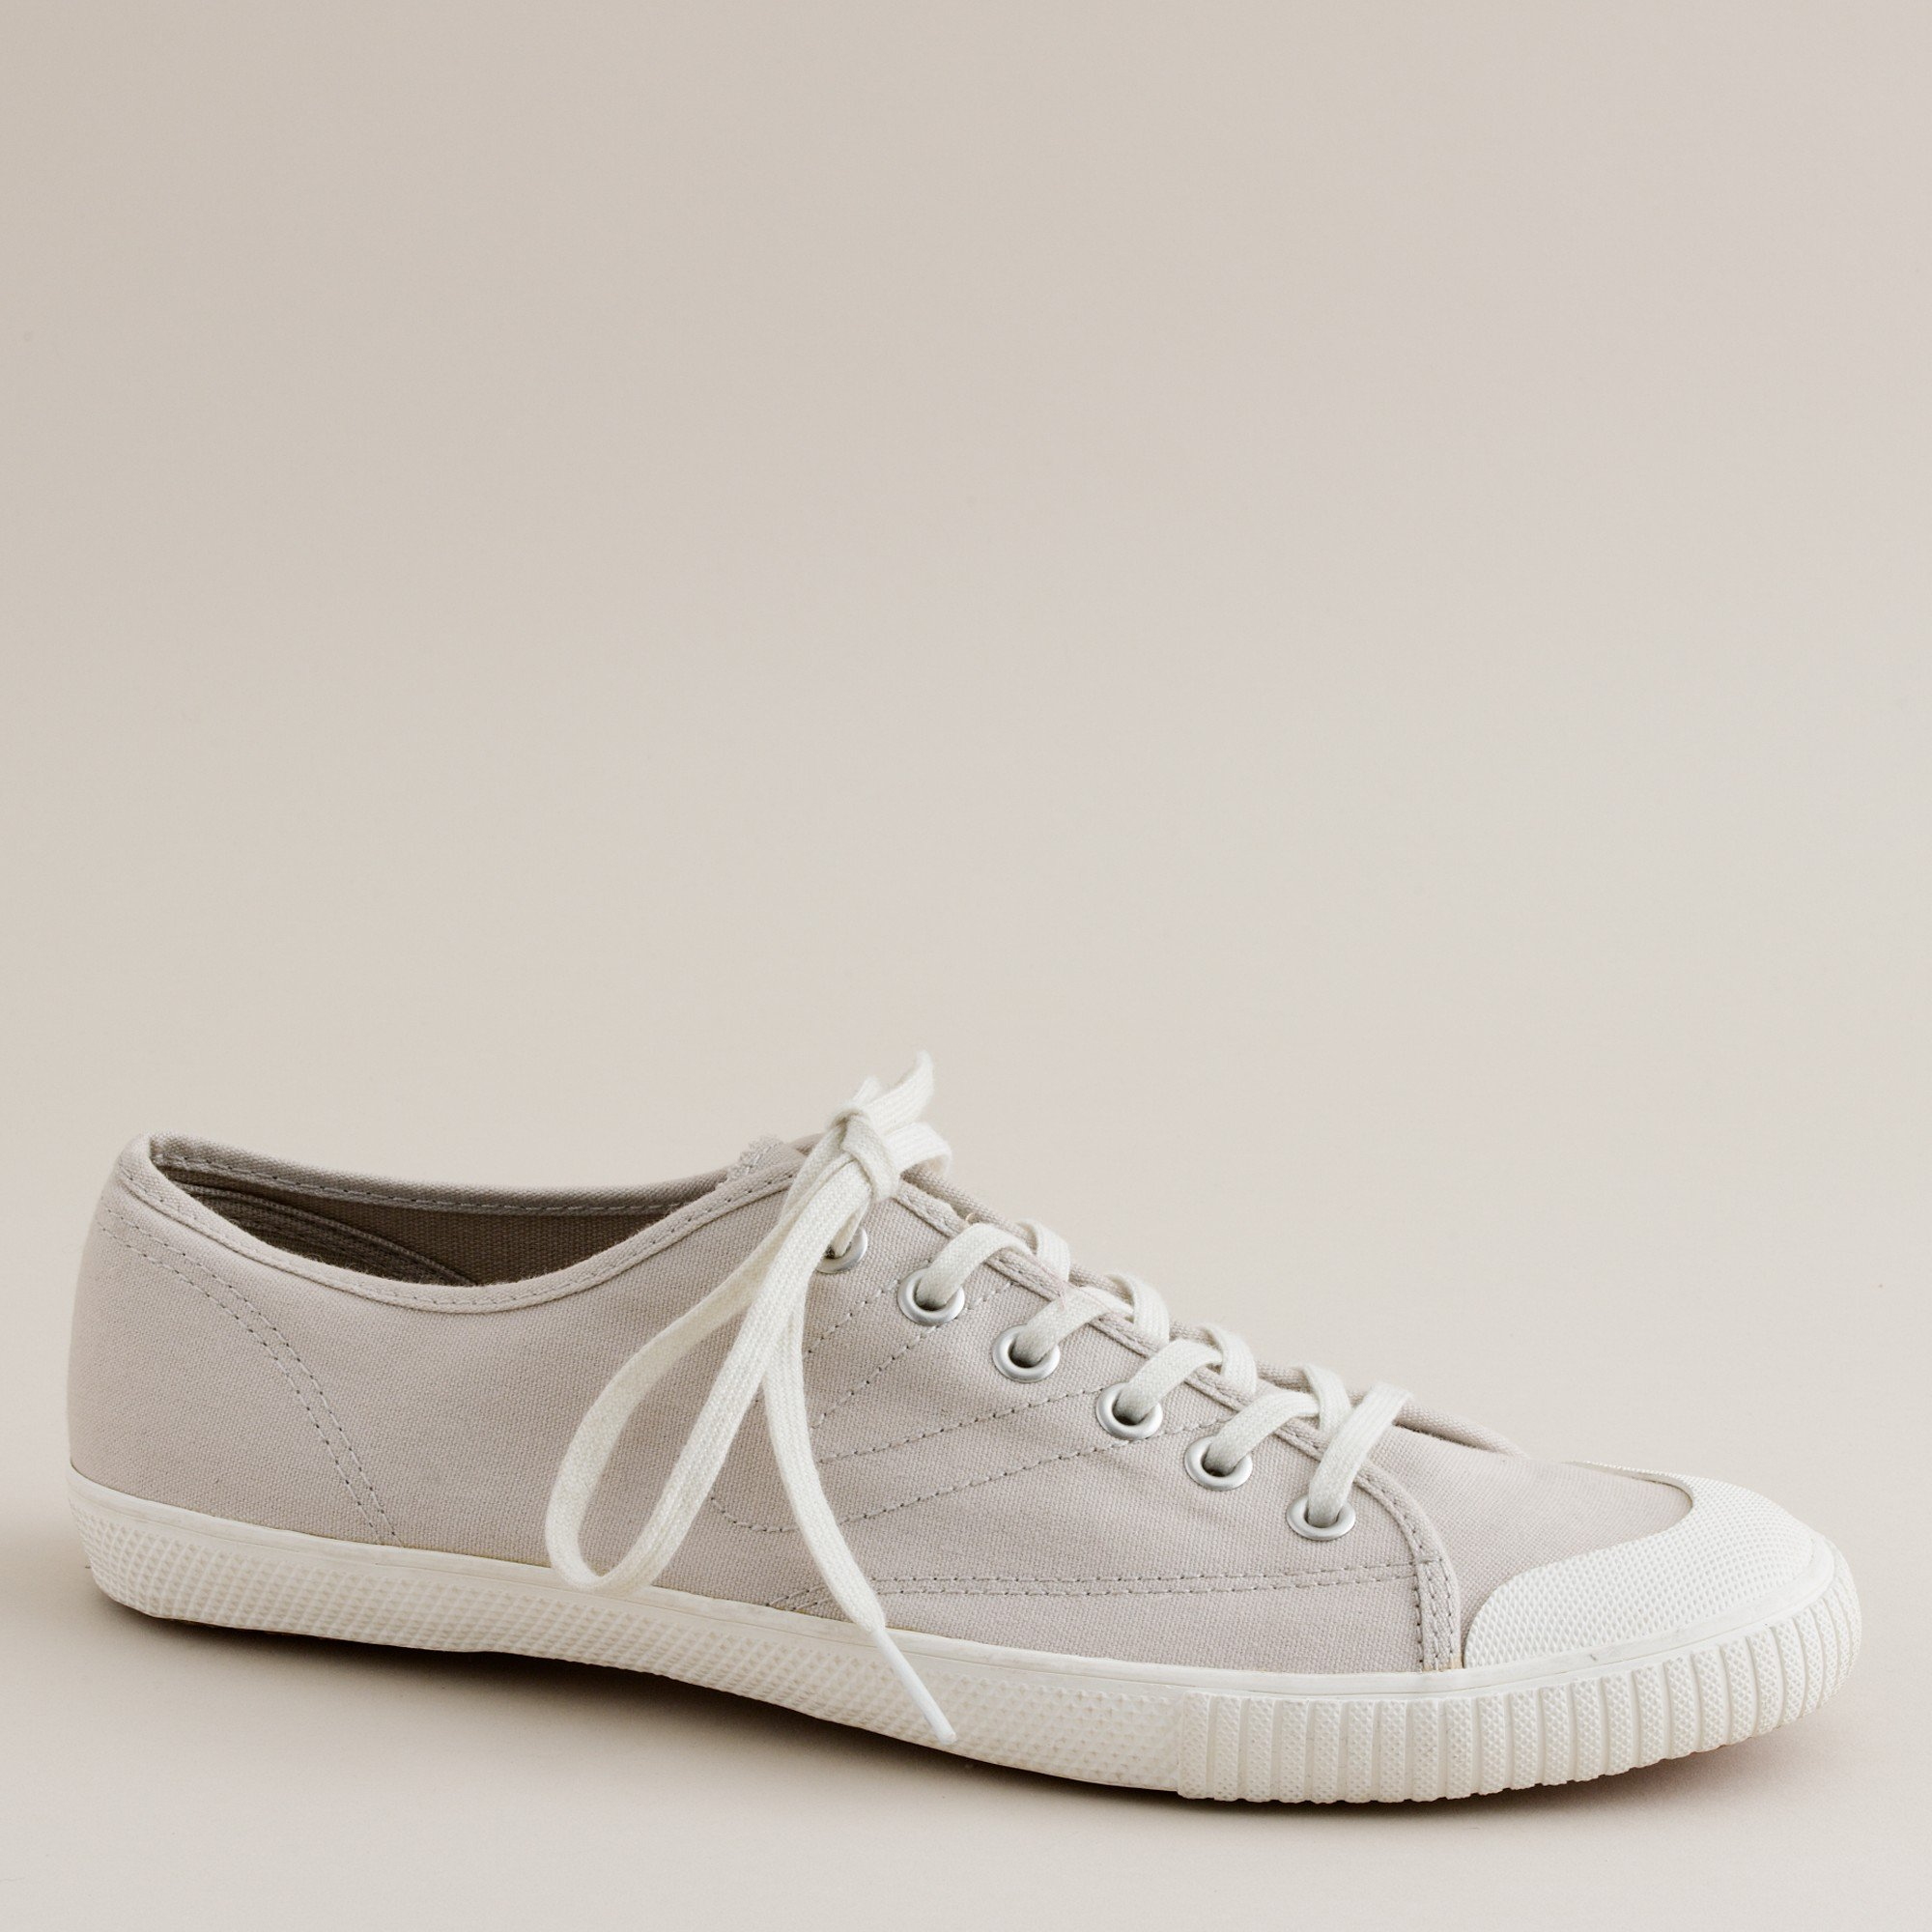 What Are Considered Tennis Shoes